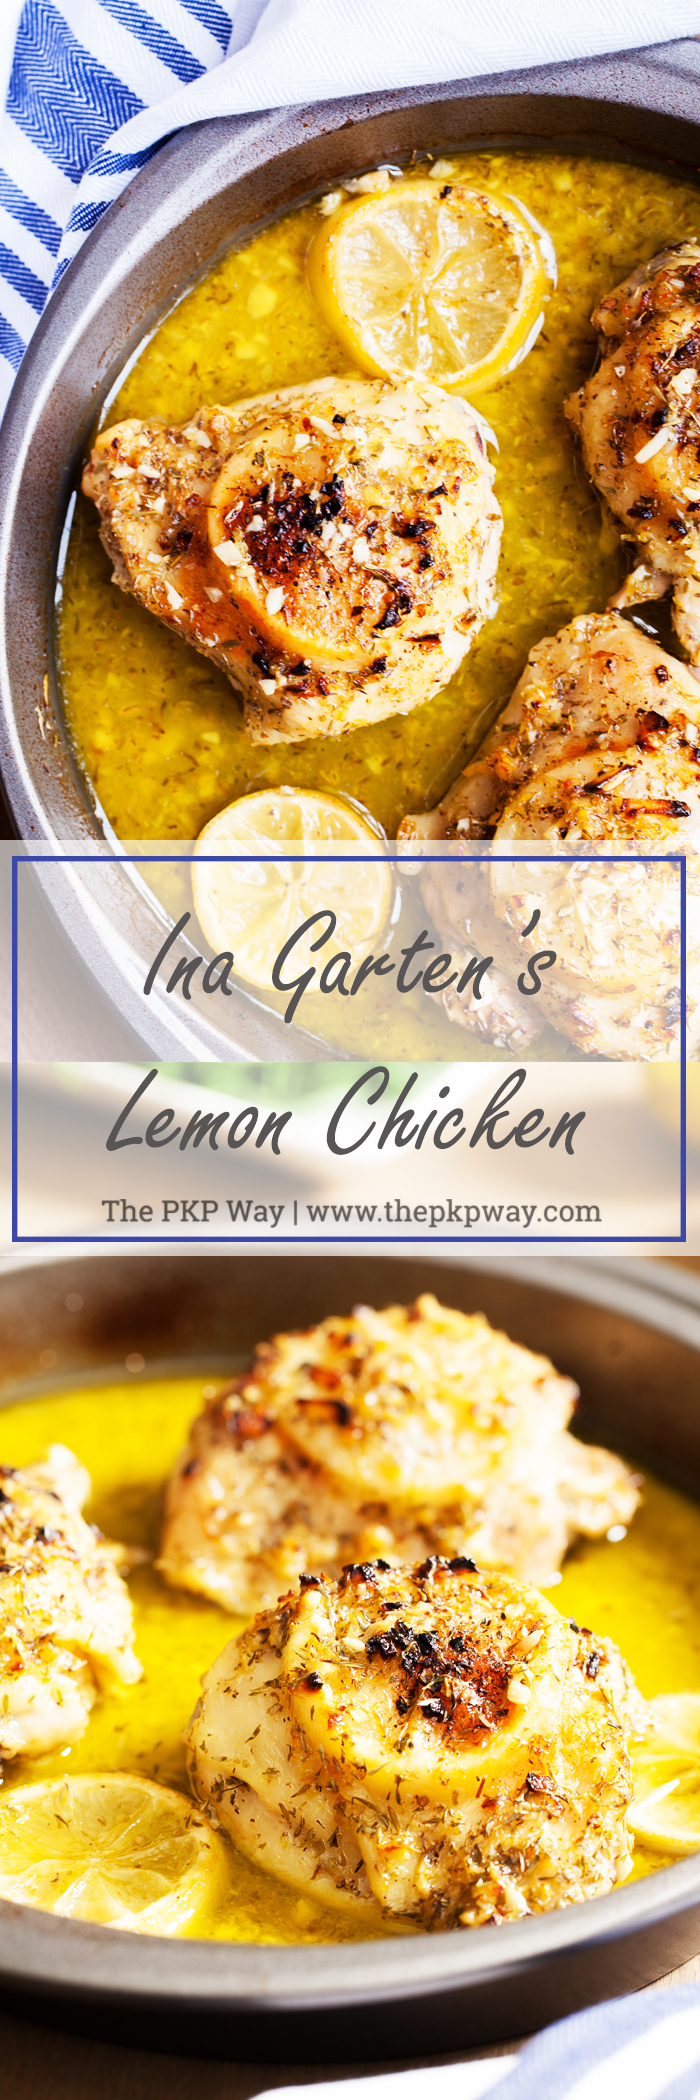 Ina Garten Chicken Recipes Ina Garten's Lemon Chicken  The Pkp Way